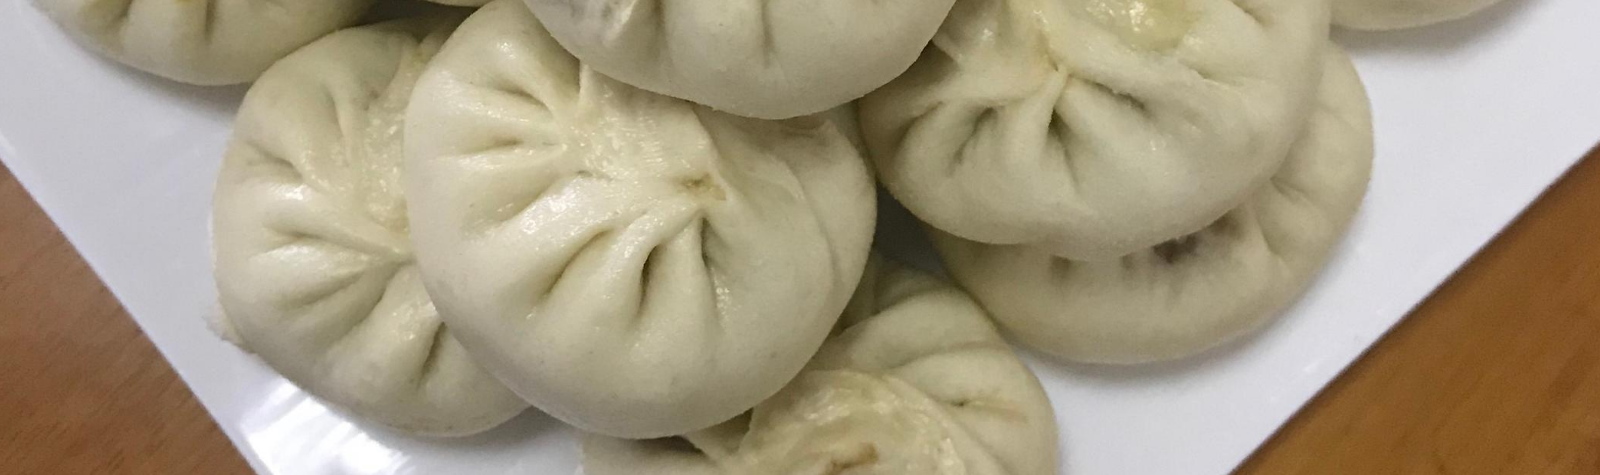 How to Make Bāozi, the Chinese Steamed Stuffed Buns